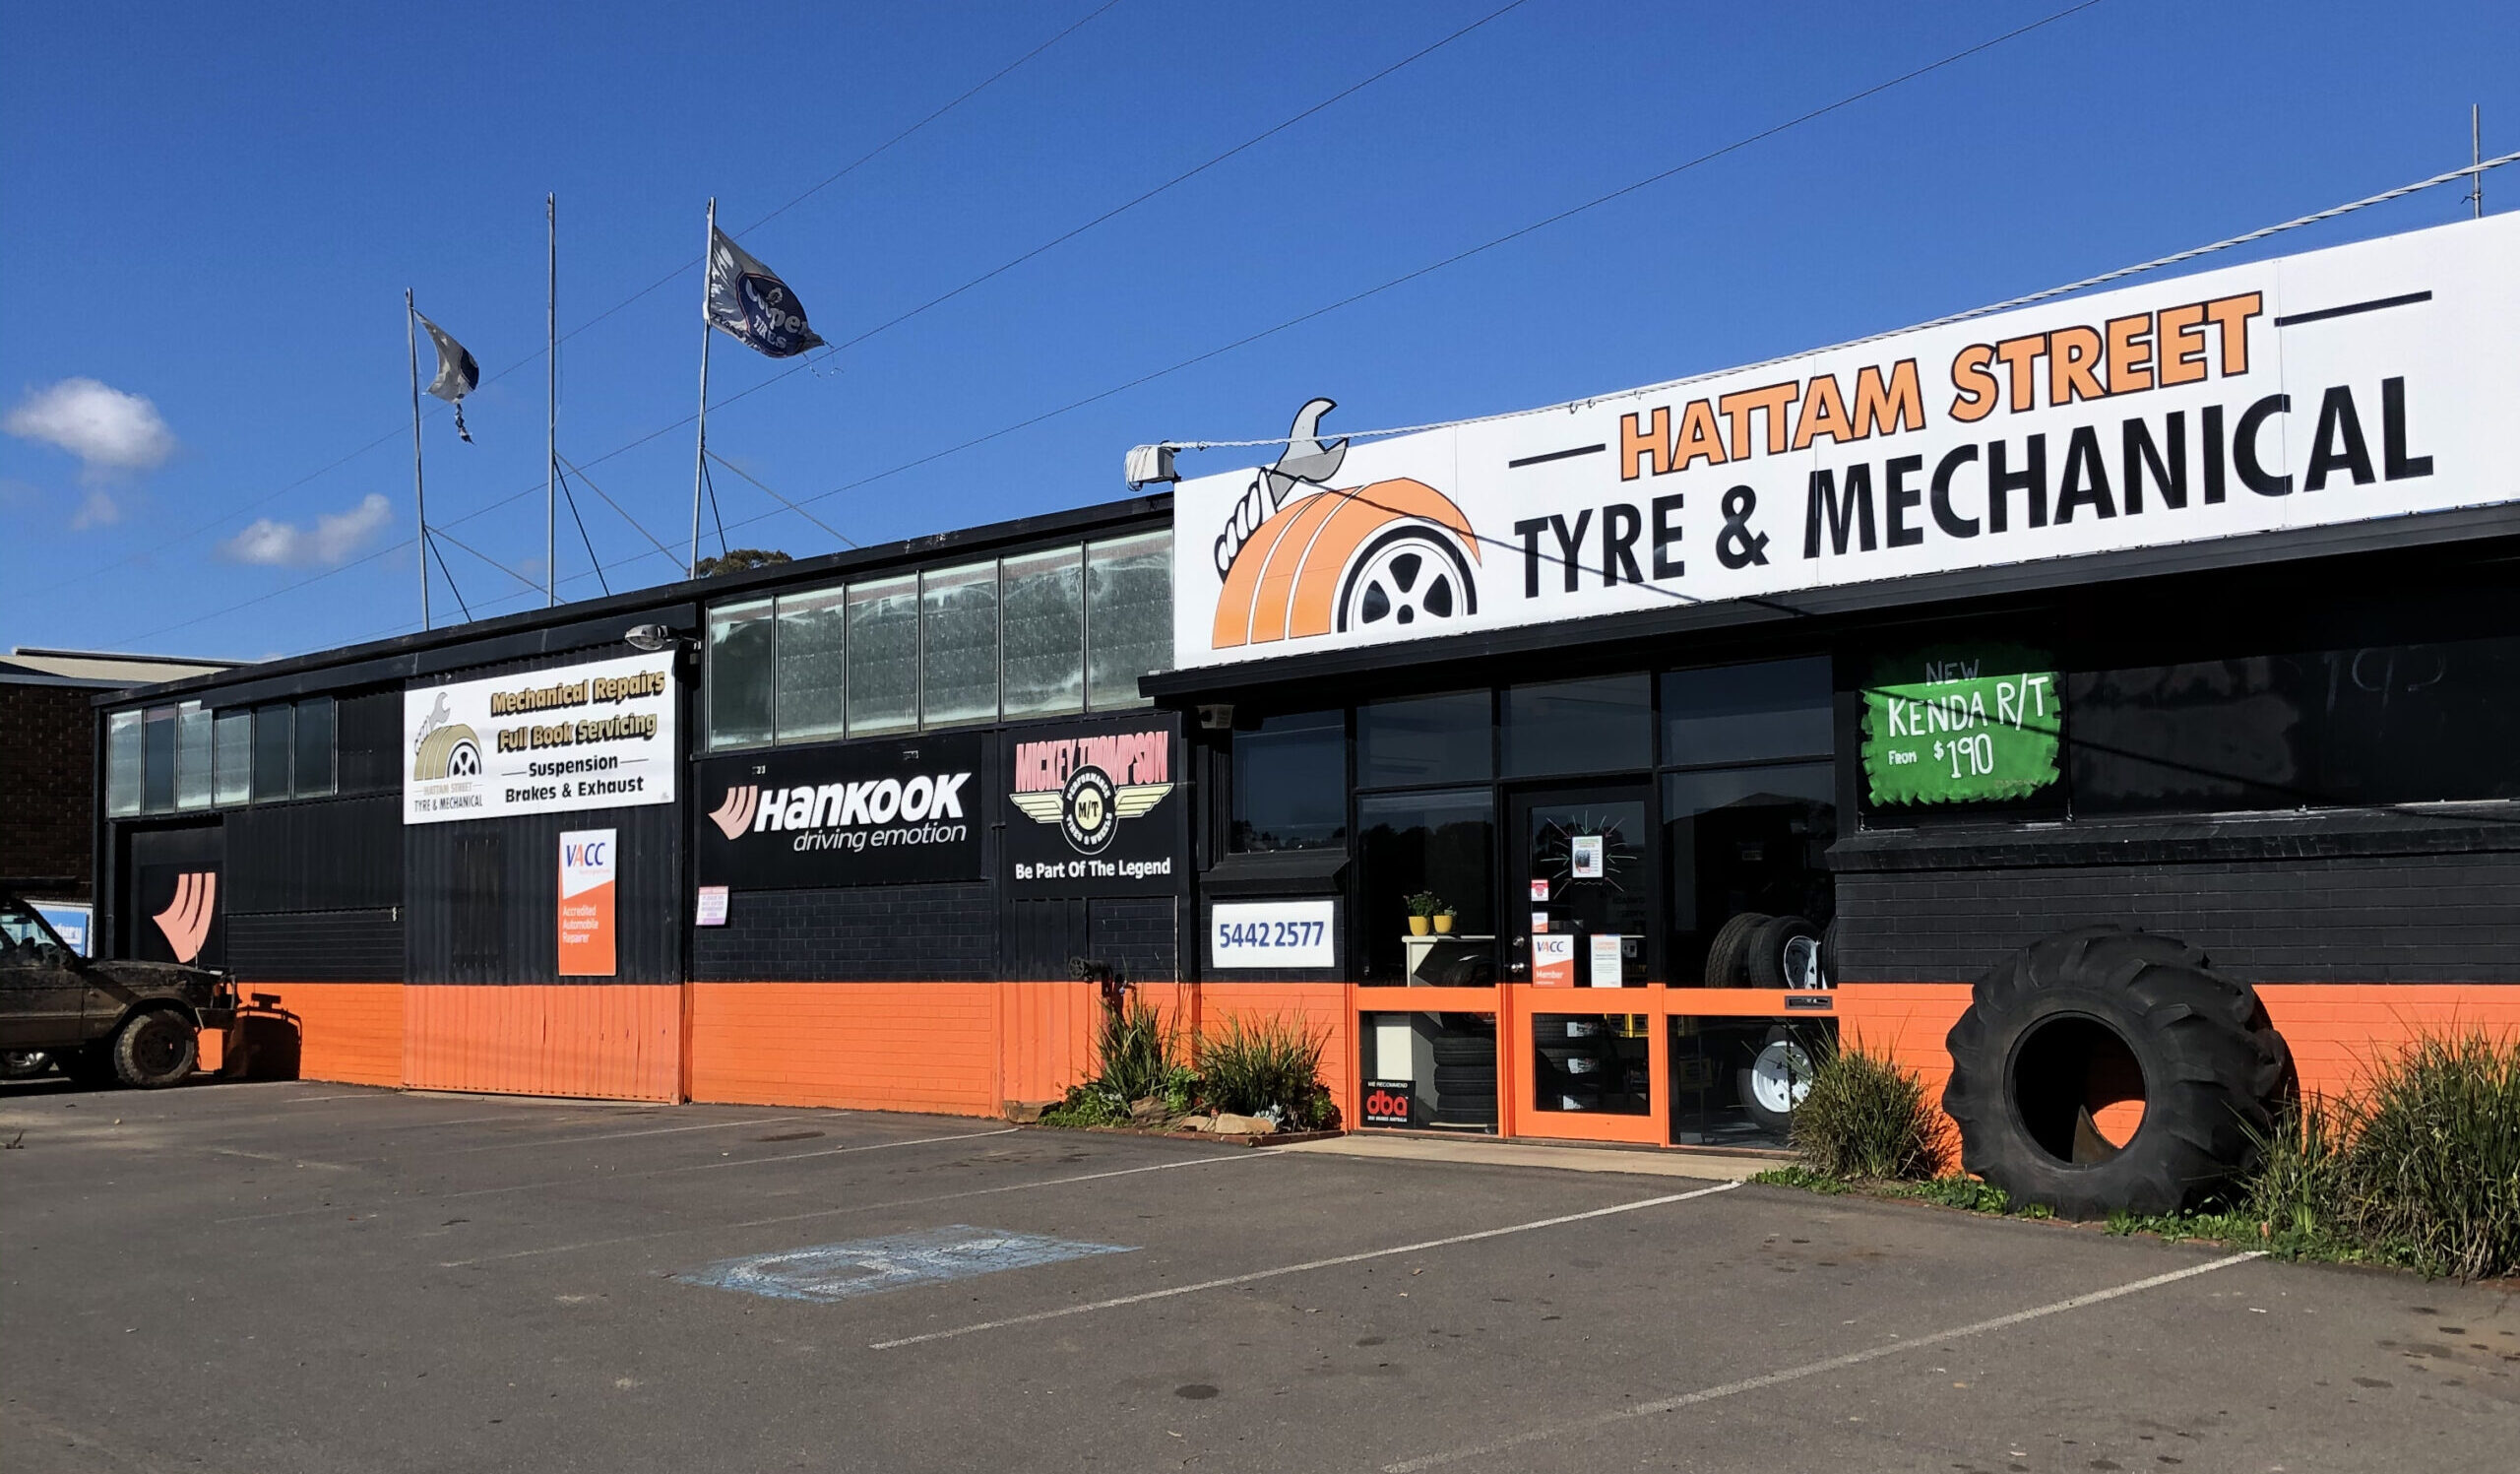 Welcome to Hattam Street Tyre & Mechanical